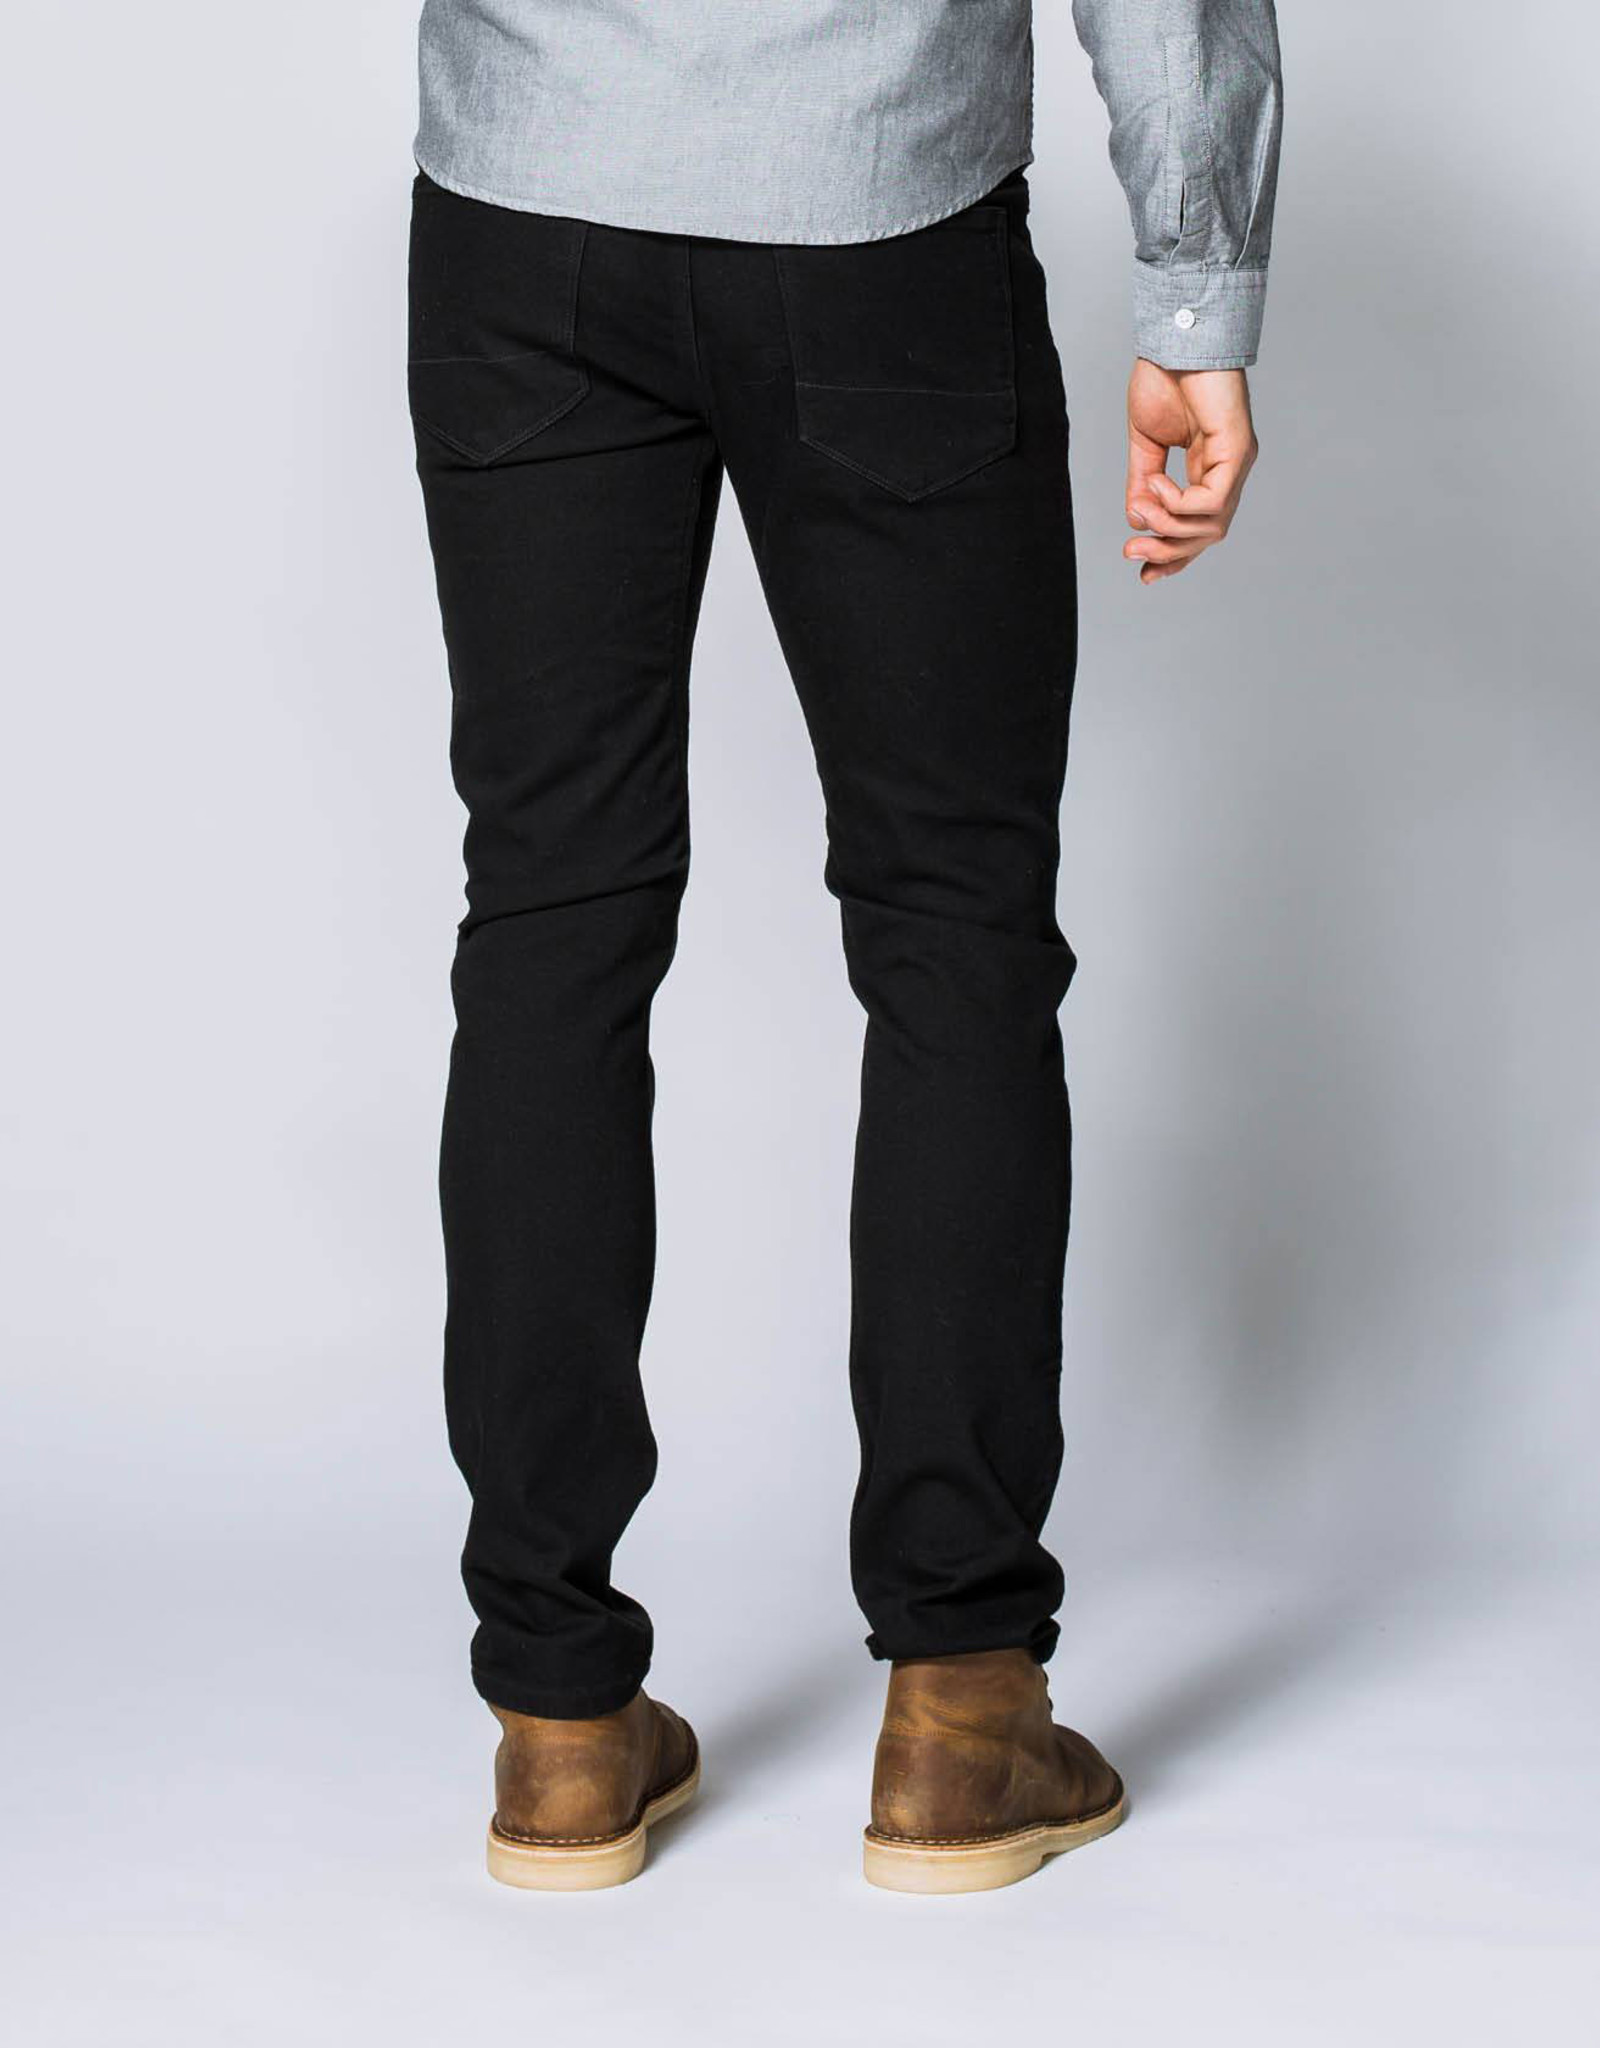 DU/ER Performance Denim Slim - Black